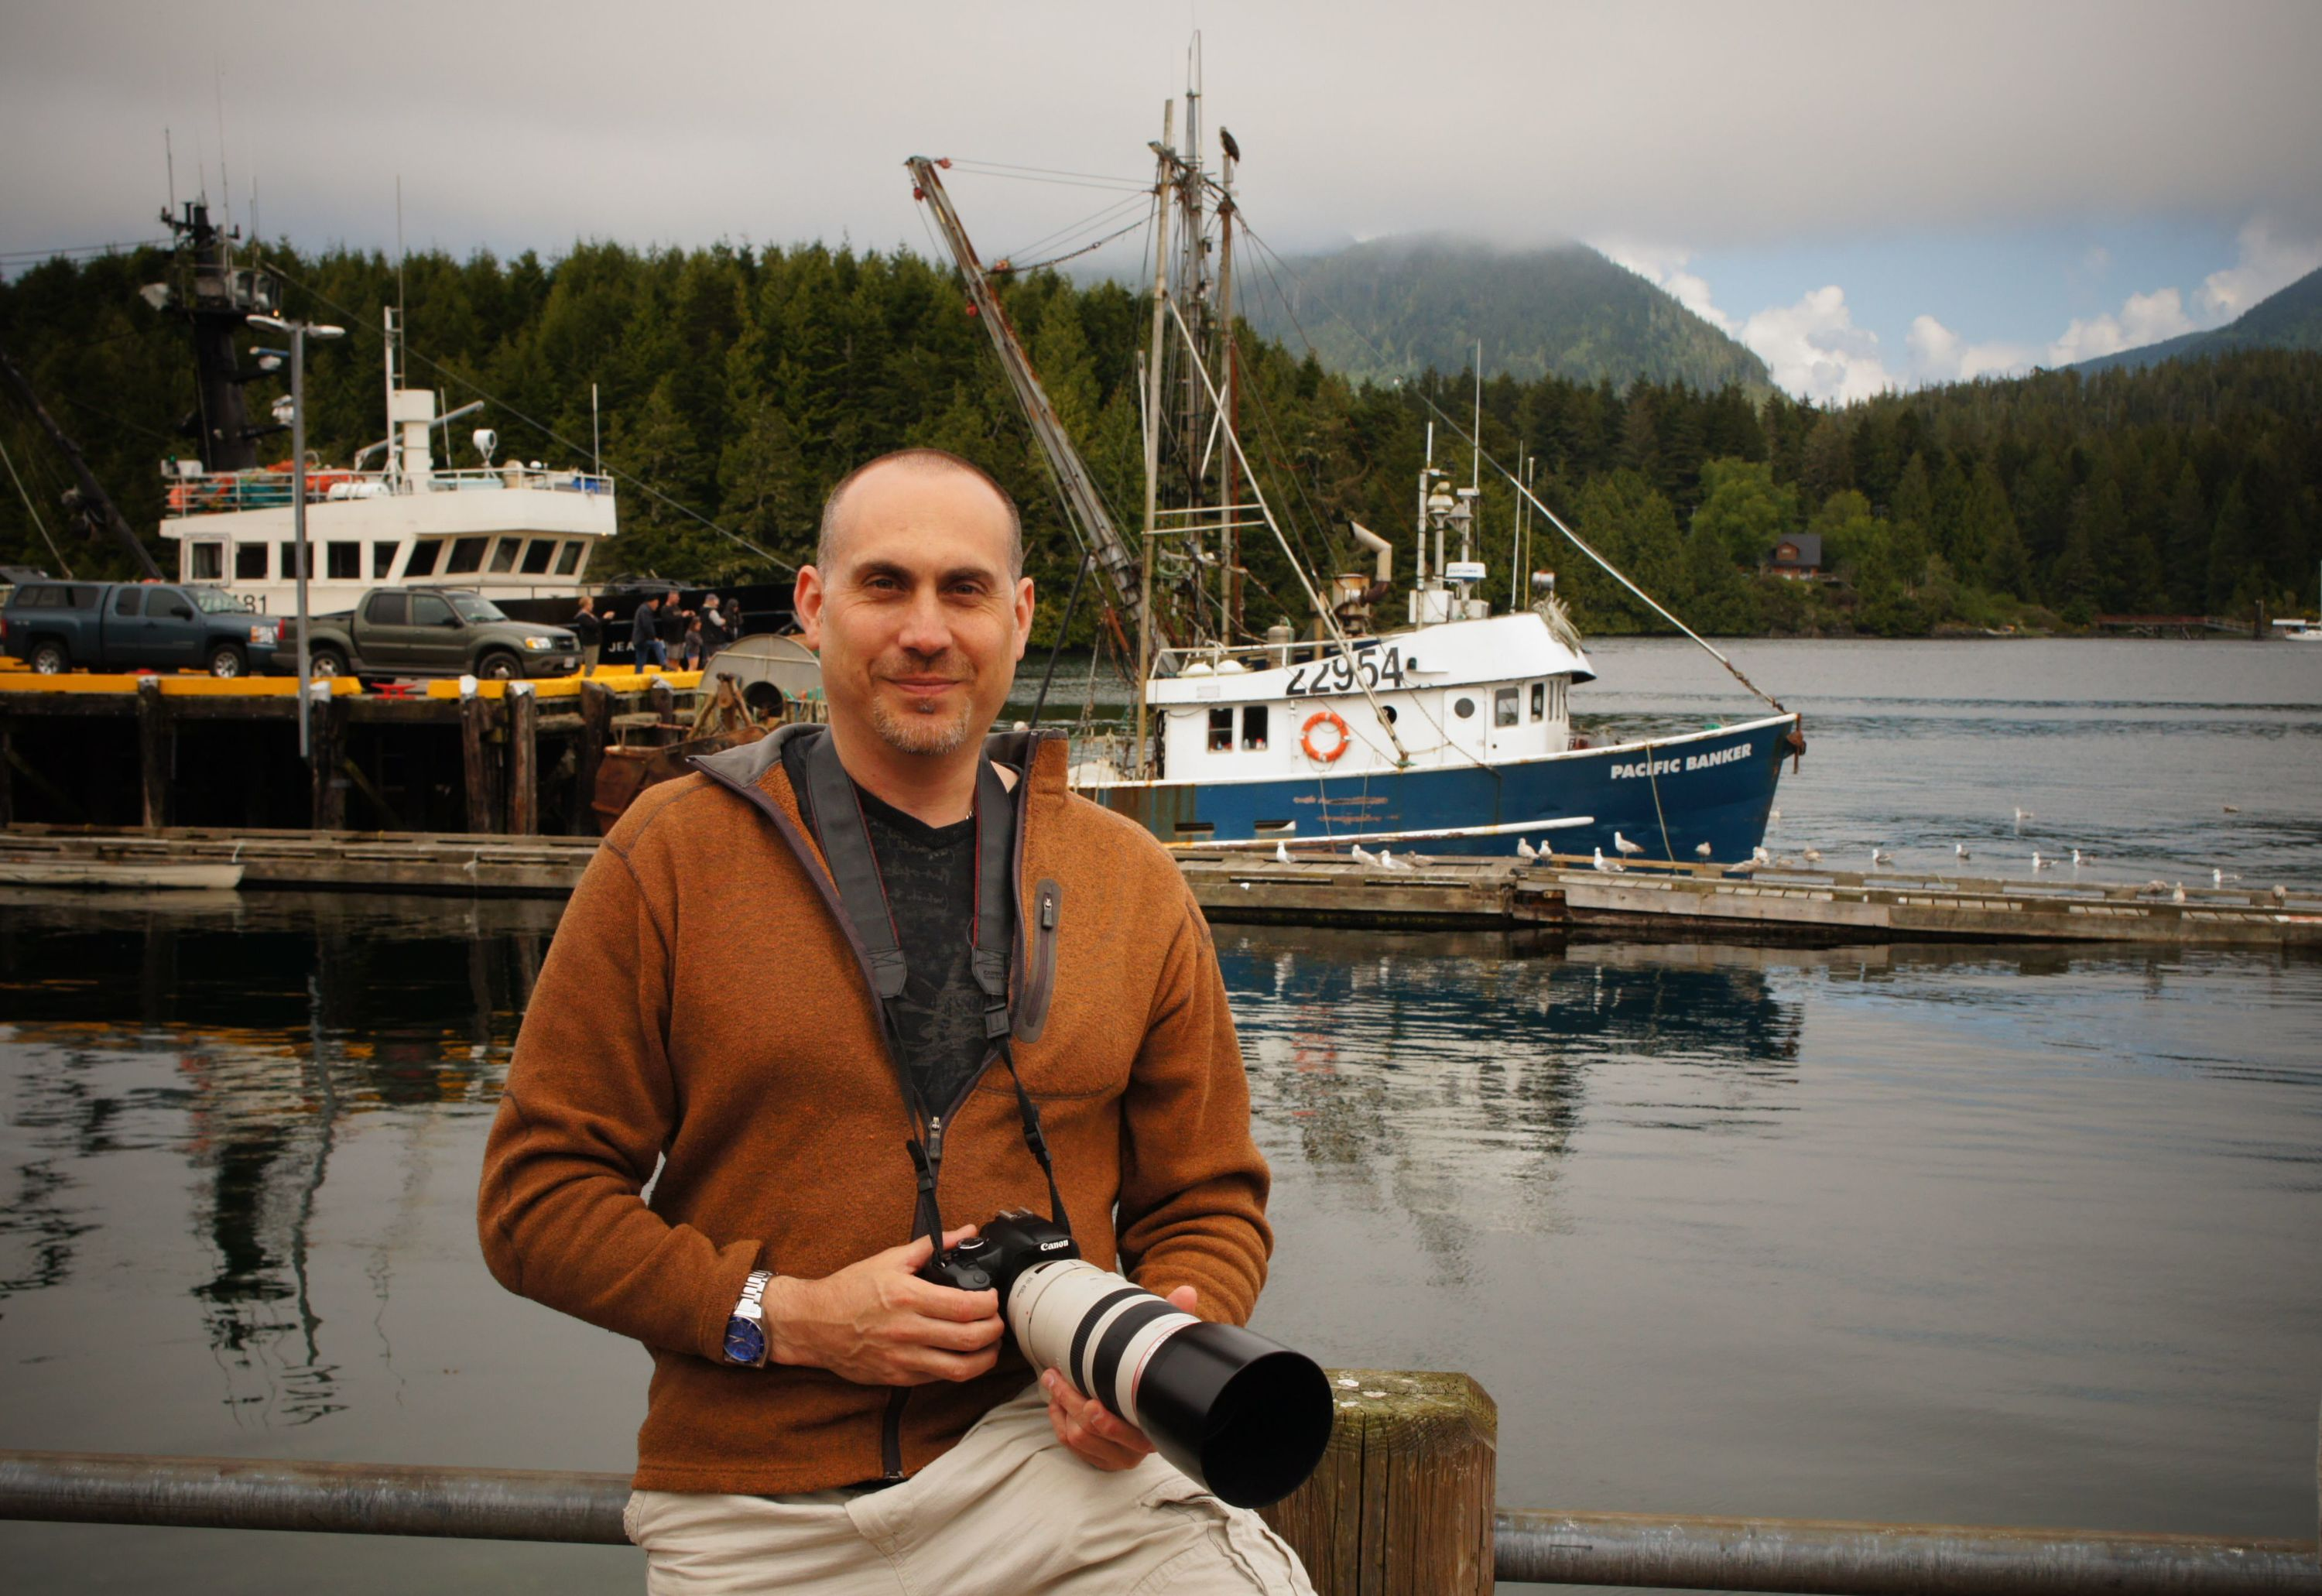 <div class='title'>           Robert VandenDool, Wildlife Artist and Photographer of Artistically Wild at Ucluelet, British Columbia         </div>                 <div class='description'>           Robert VandenDool, Wildlife Artist and Photographer of Artistically Wild at Ucluelet, British Columbia         </div>